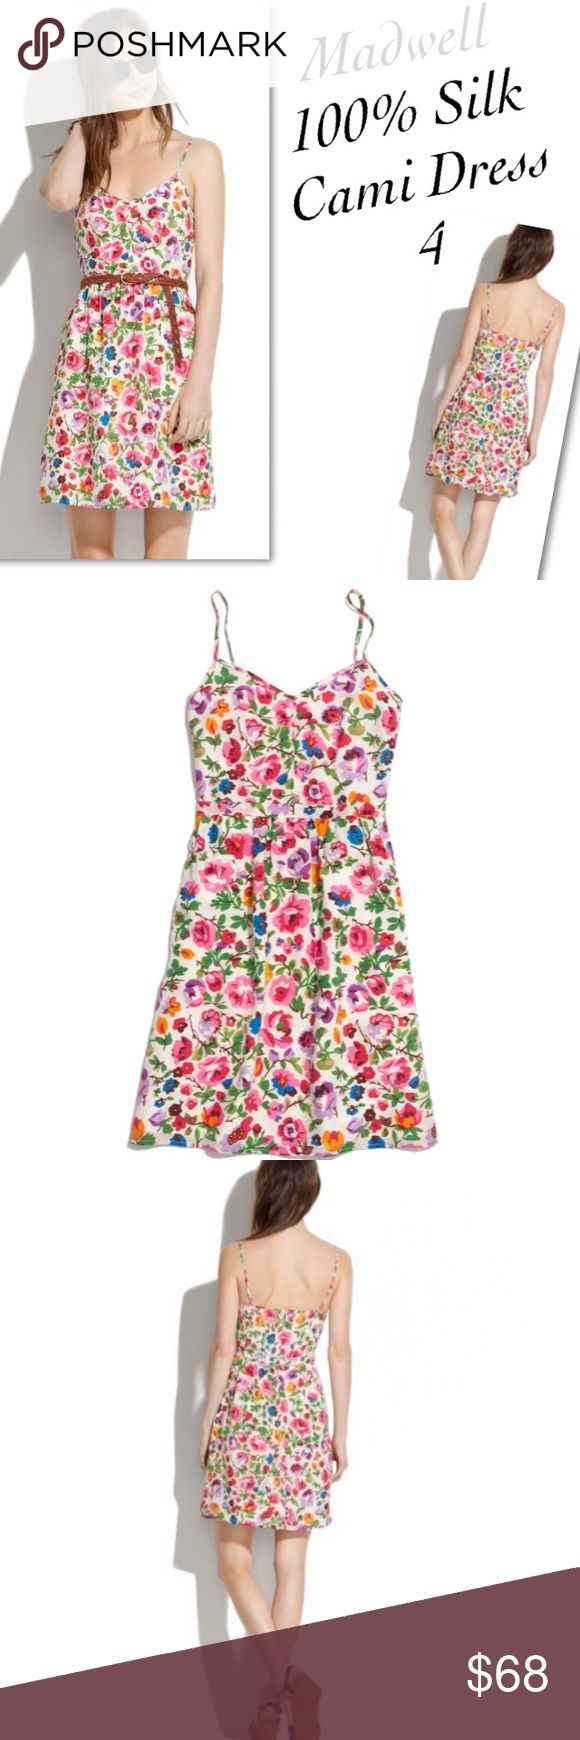 ⤵️Madwell 100% Silk Floral Cami Dress 4 Excellent pre-owned condition. No flaws or signs of wear. Adjustable straps. 1/2 zip down the back. Size 4. TTS Madewell Dresses